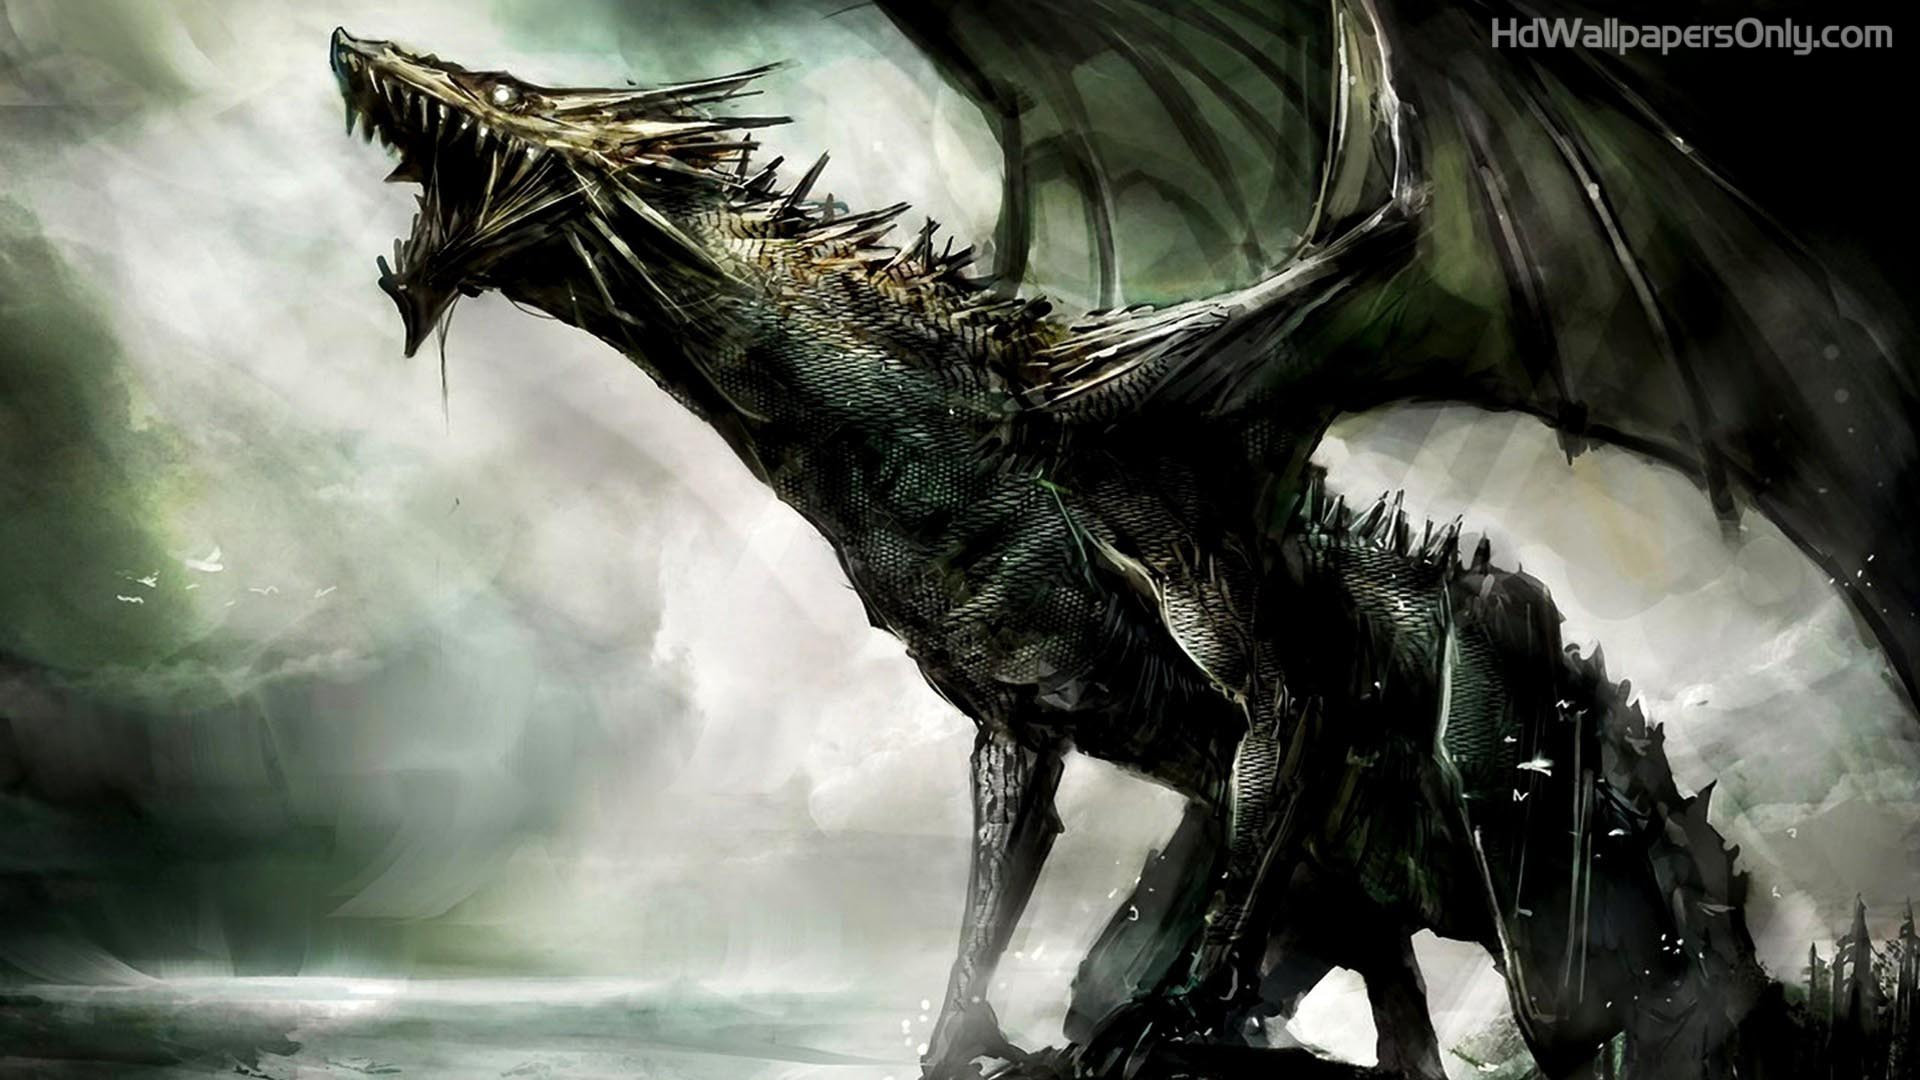 dragon hd wallpapers - wallpaper cave